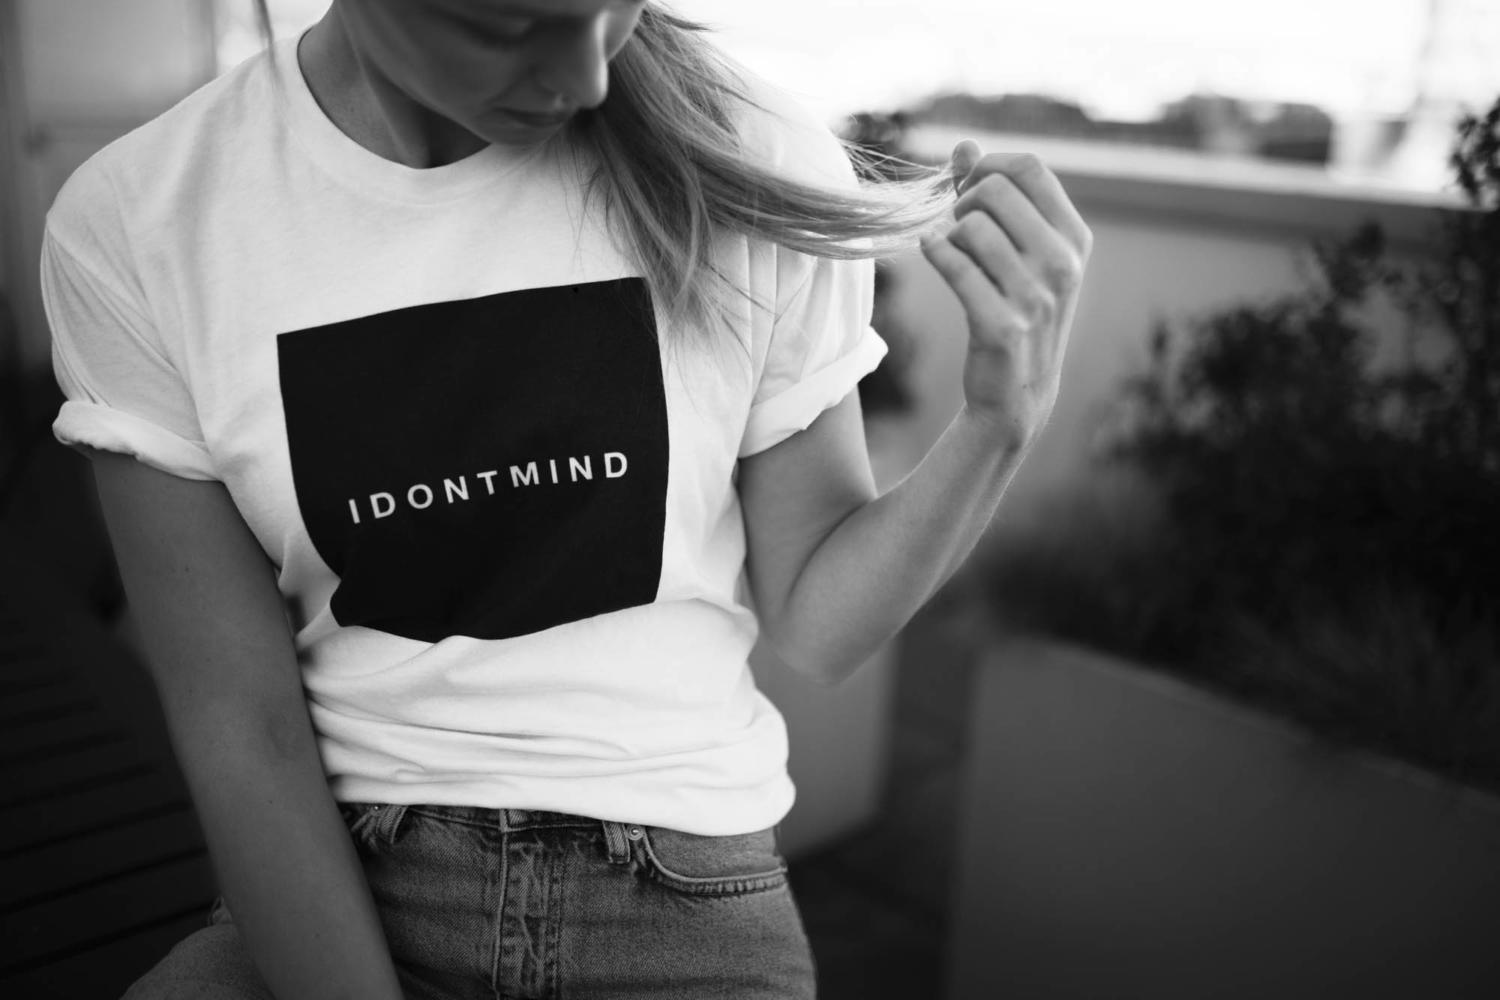 Melissa Benoist is supporting the IDONTMIND campaign launched by Chris Wood.